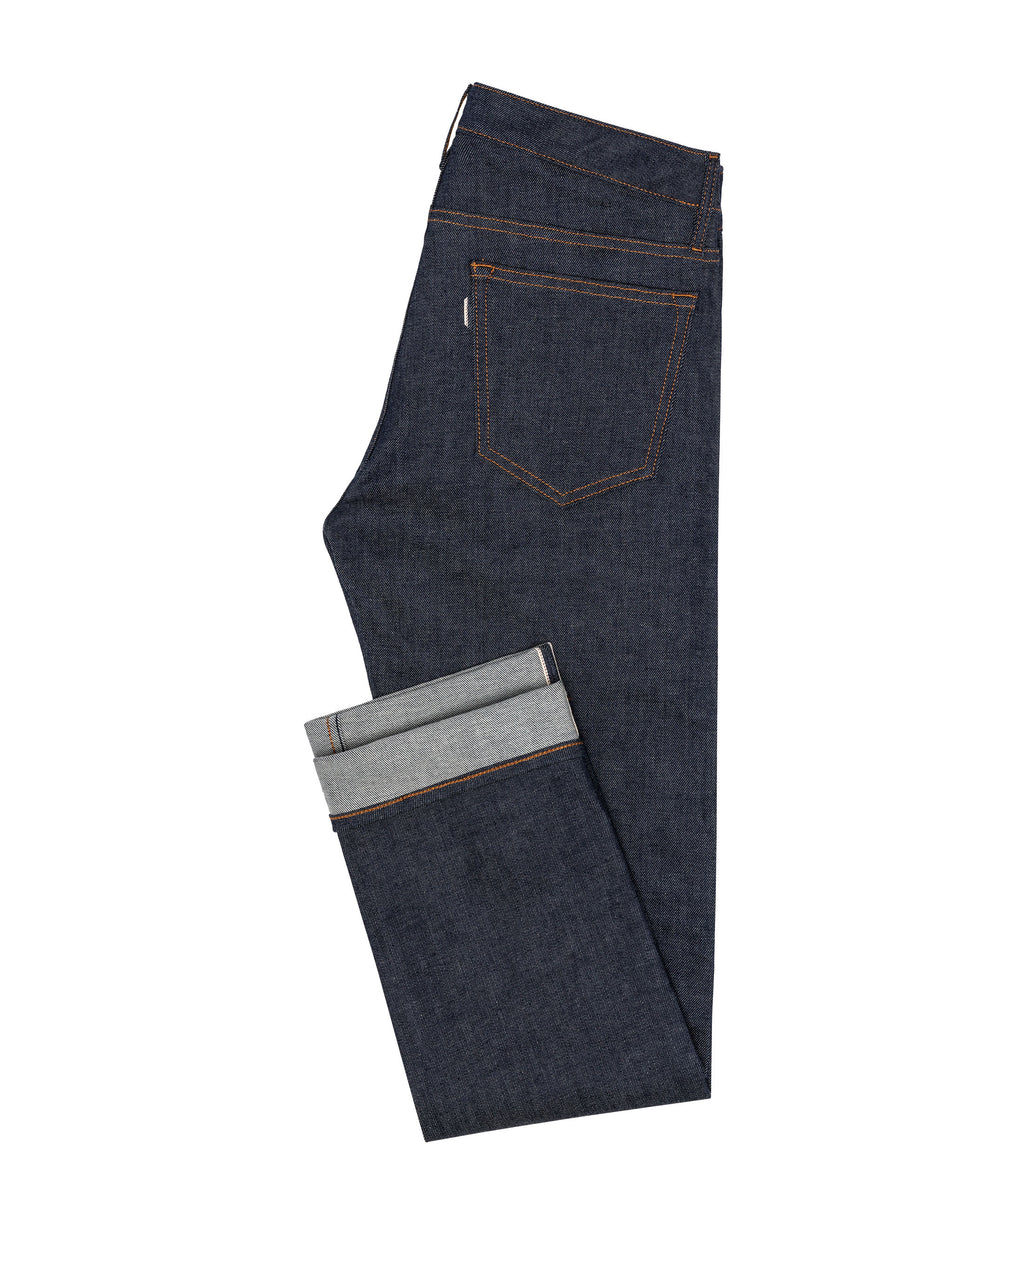 DEN004 Selvedge stretch 5 pocket, Made In Italy